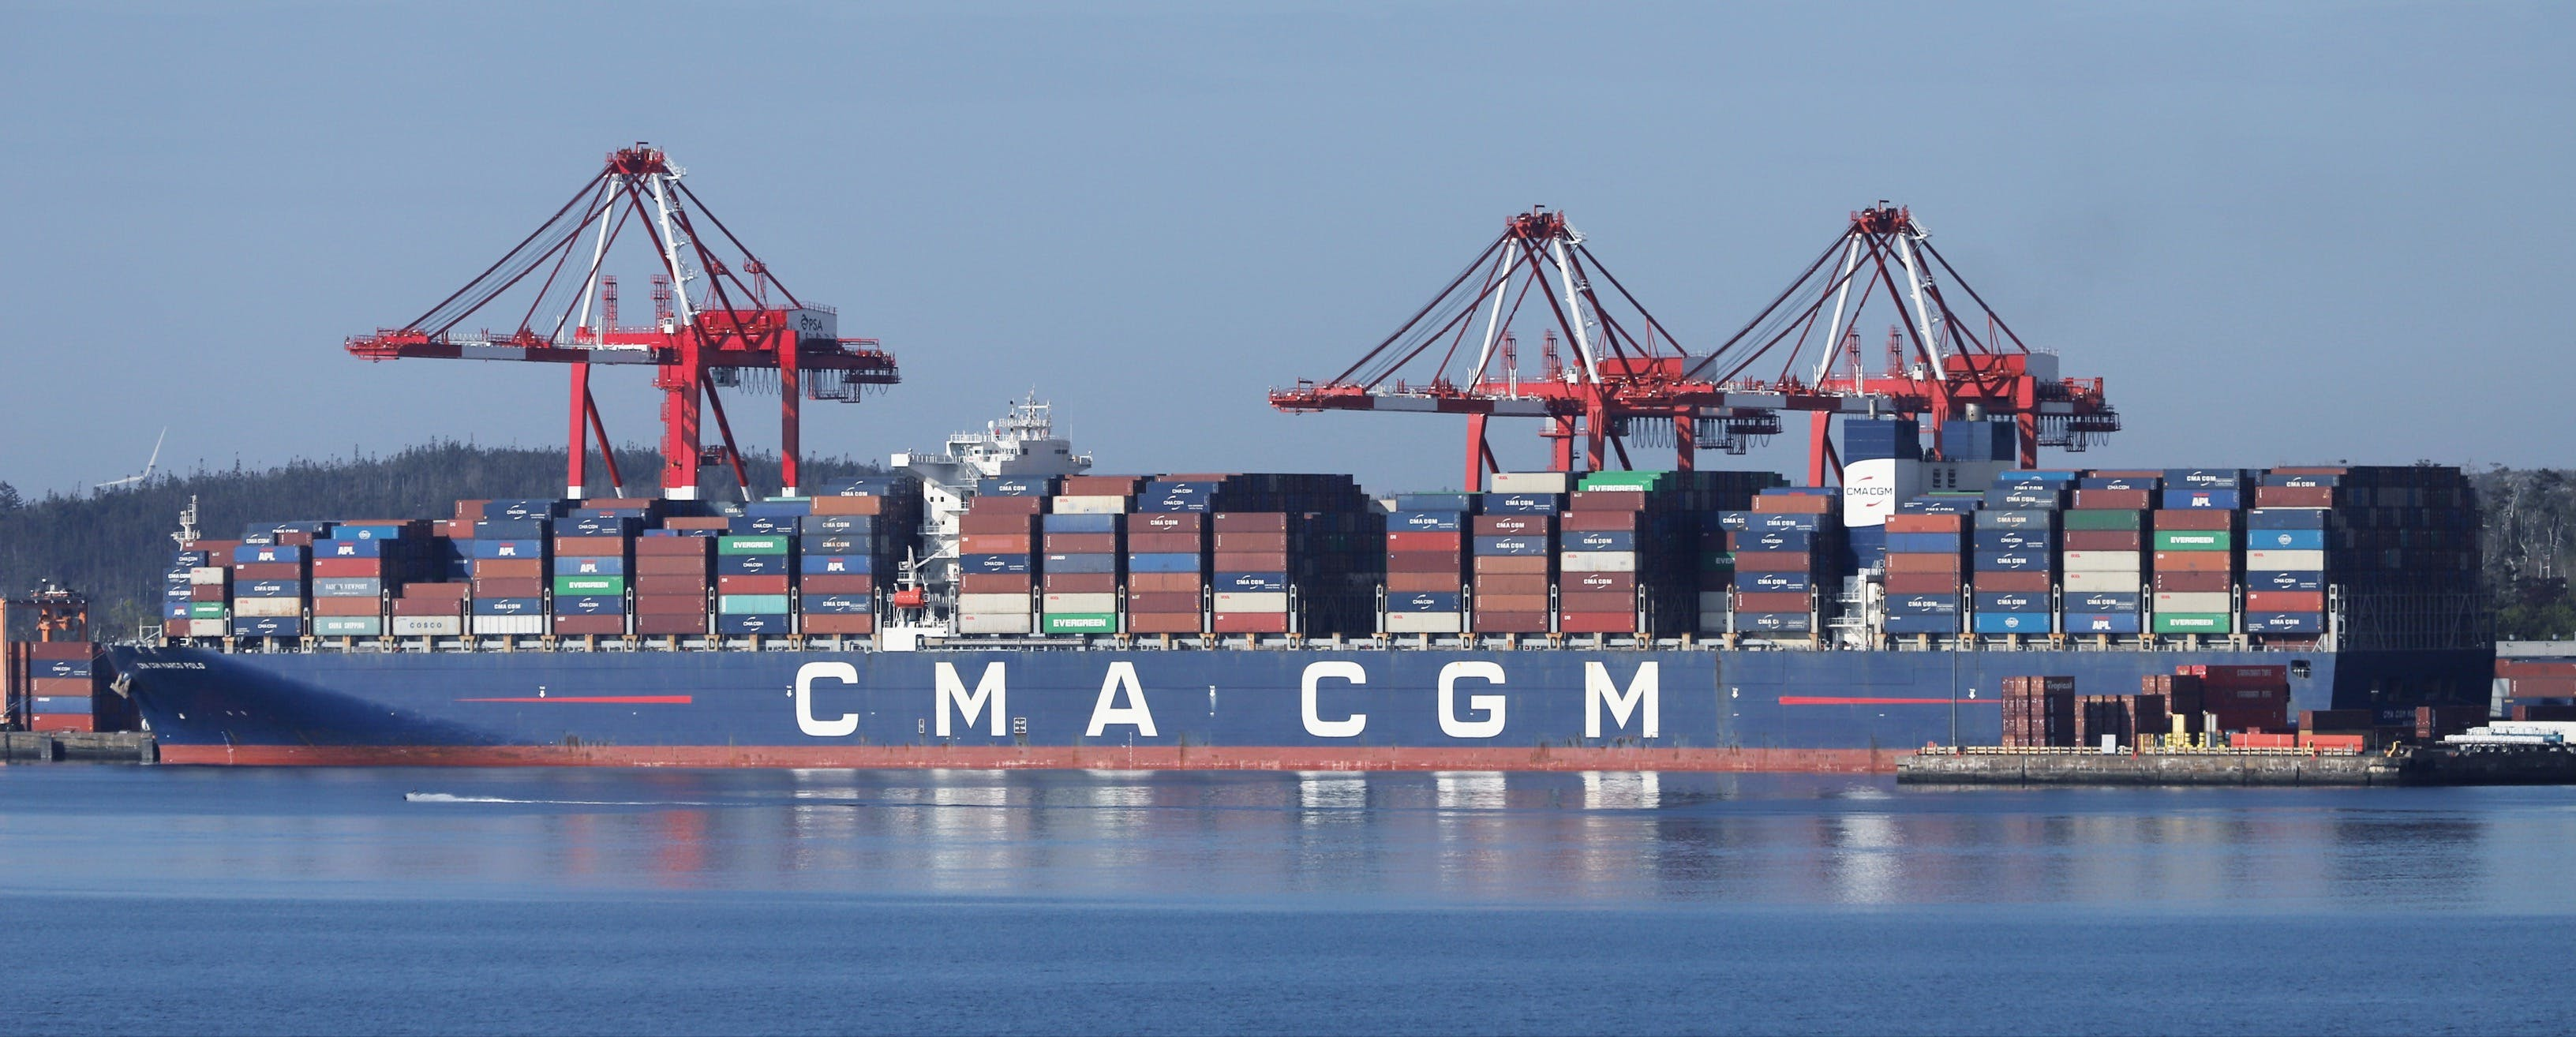 The CMA CGM Marco Polo has docked at the Port of Halifax after arriving Monday evening. It's the largest container ship to call on a Canadian port and the first vessel of its size to dock on the East Coast of North America.